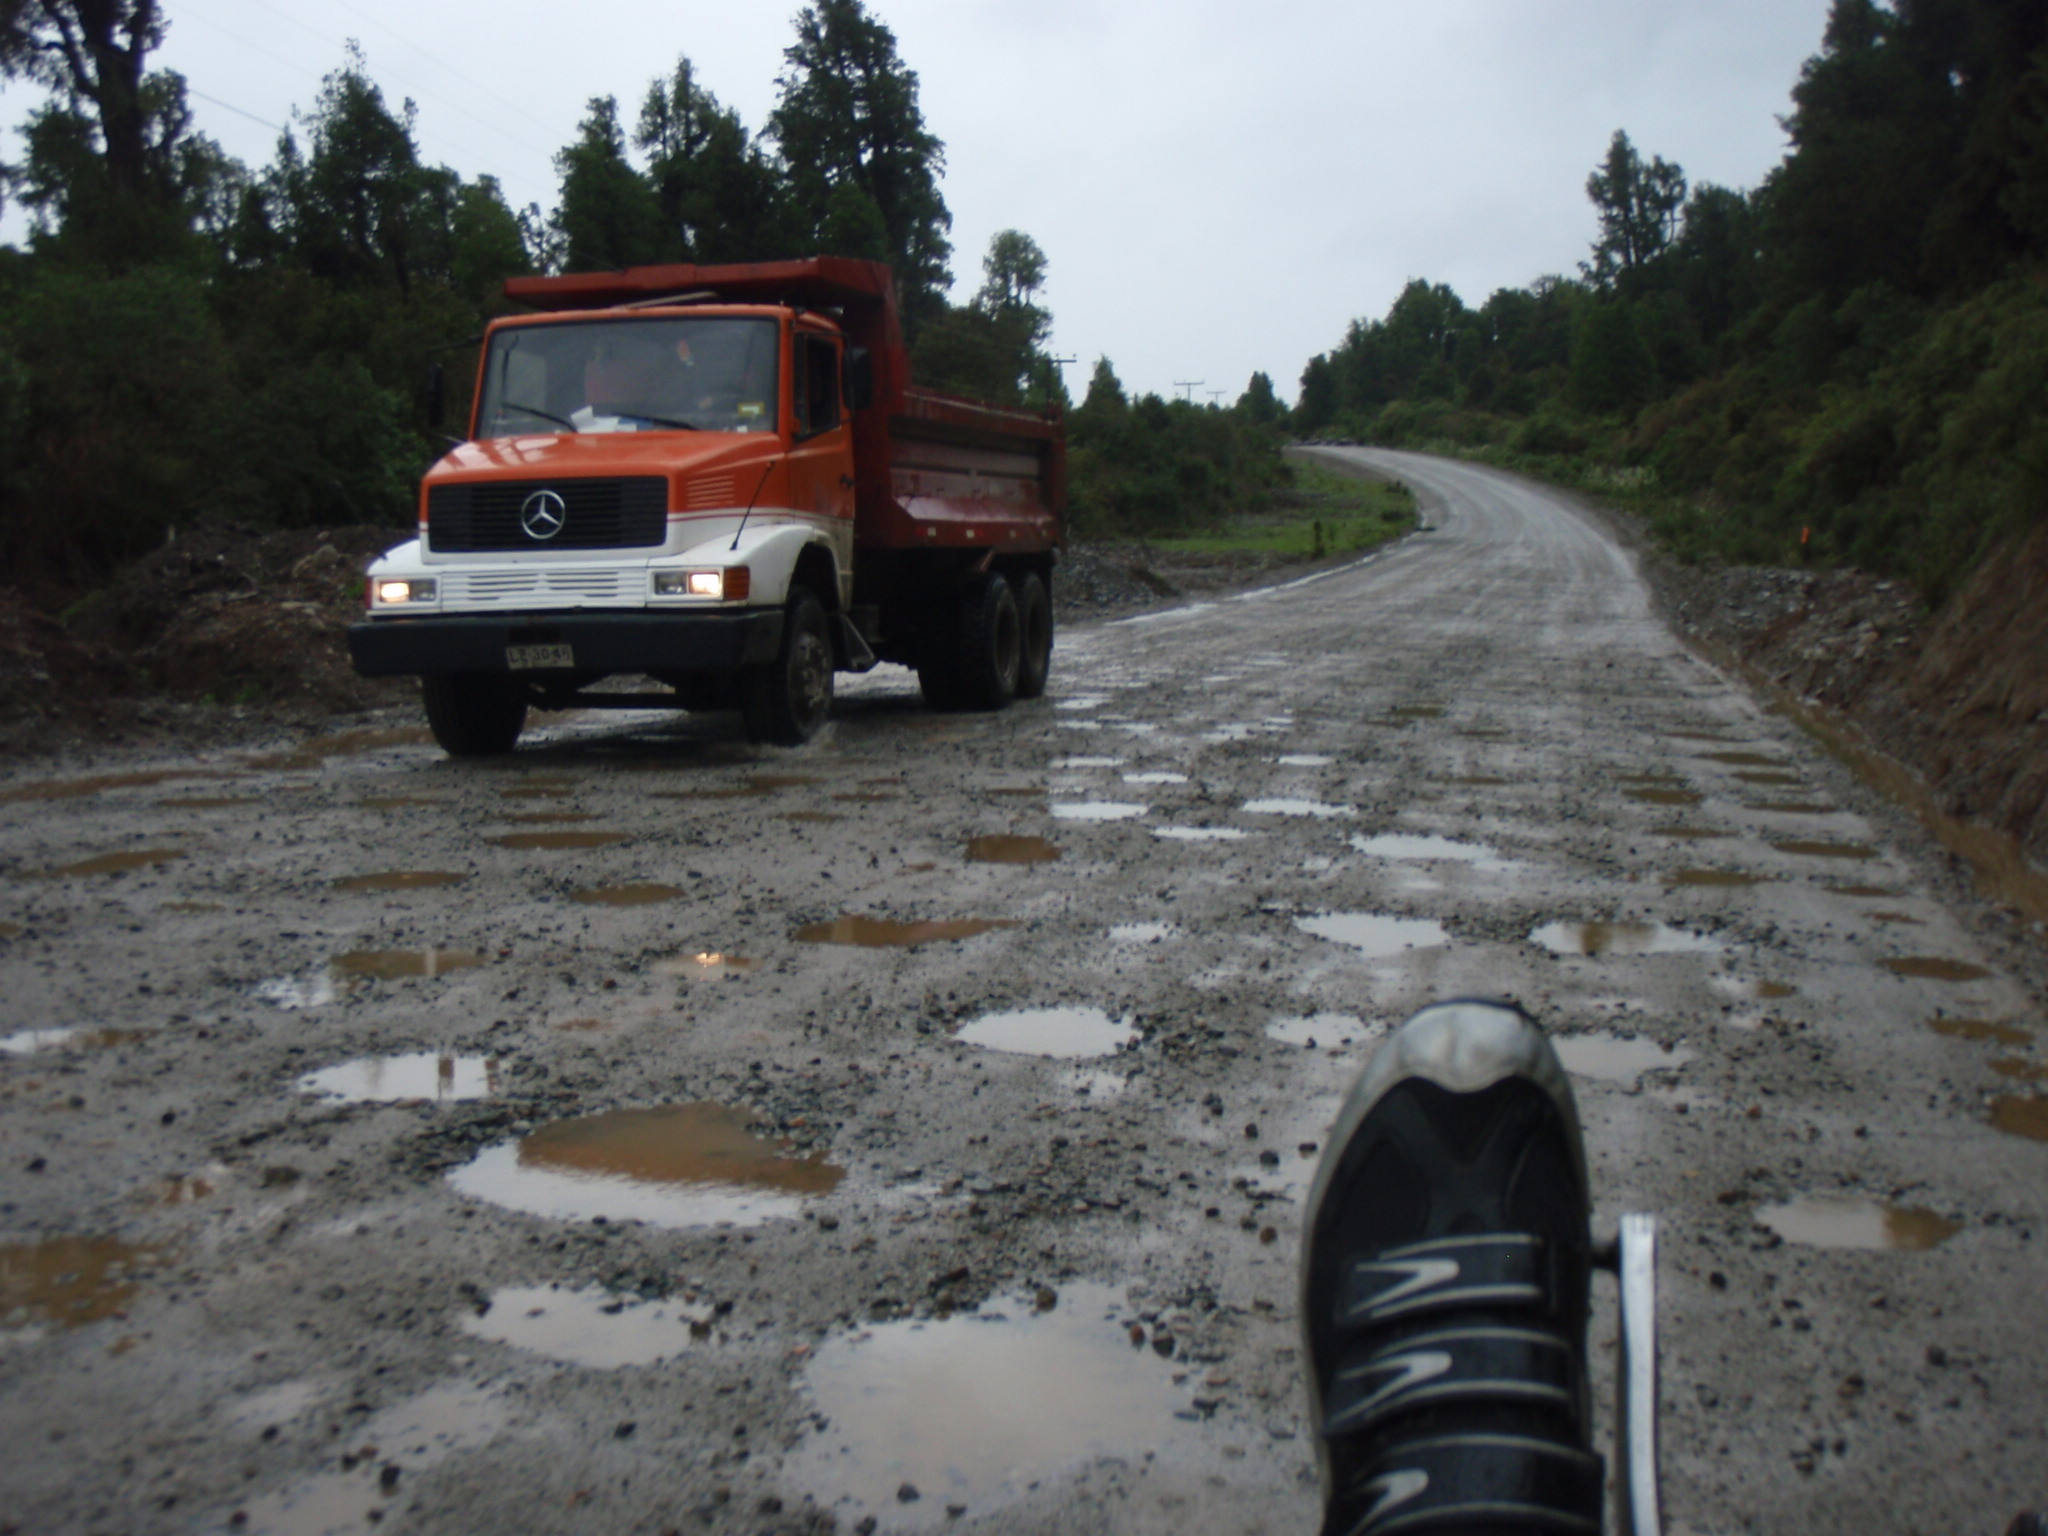 One of the bad stretches of the Carreterra Austral